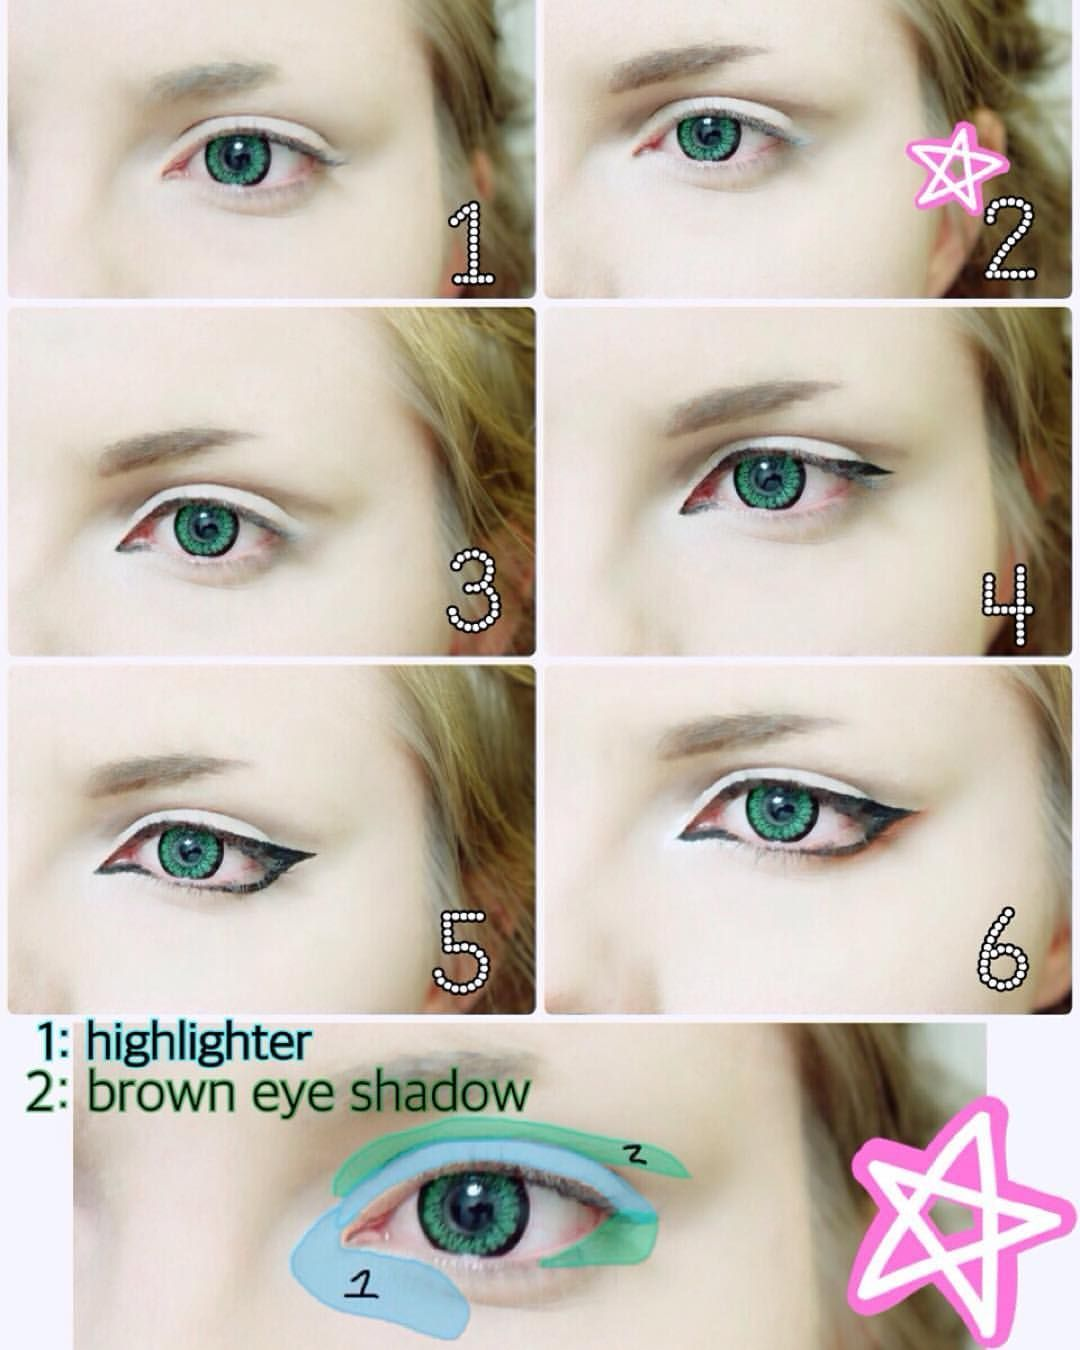 Heres the anime eye makeup tutorial i promised i tried to keep it fairly simple ps my skin is not this smooth irl also i didnt have lighter contacts